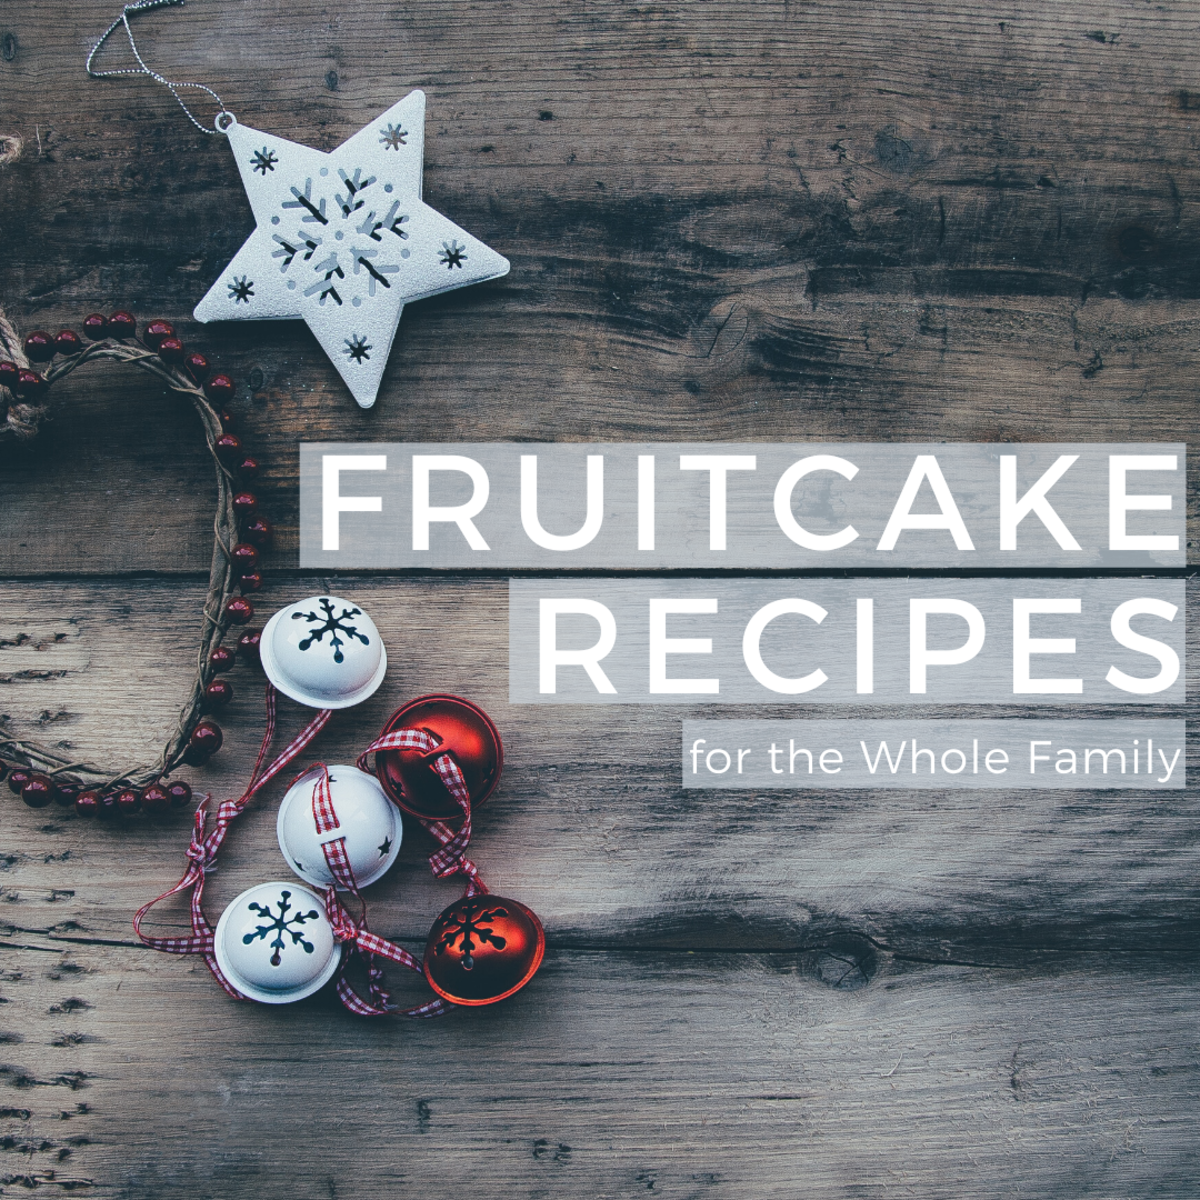 When it's made right, fruitcake is my absolute favorite holiday dessert. Here are my can't-fail recipes for this Christmas classic.